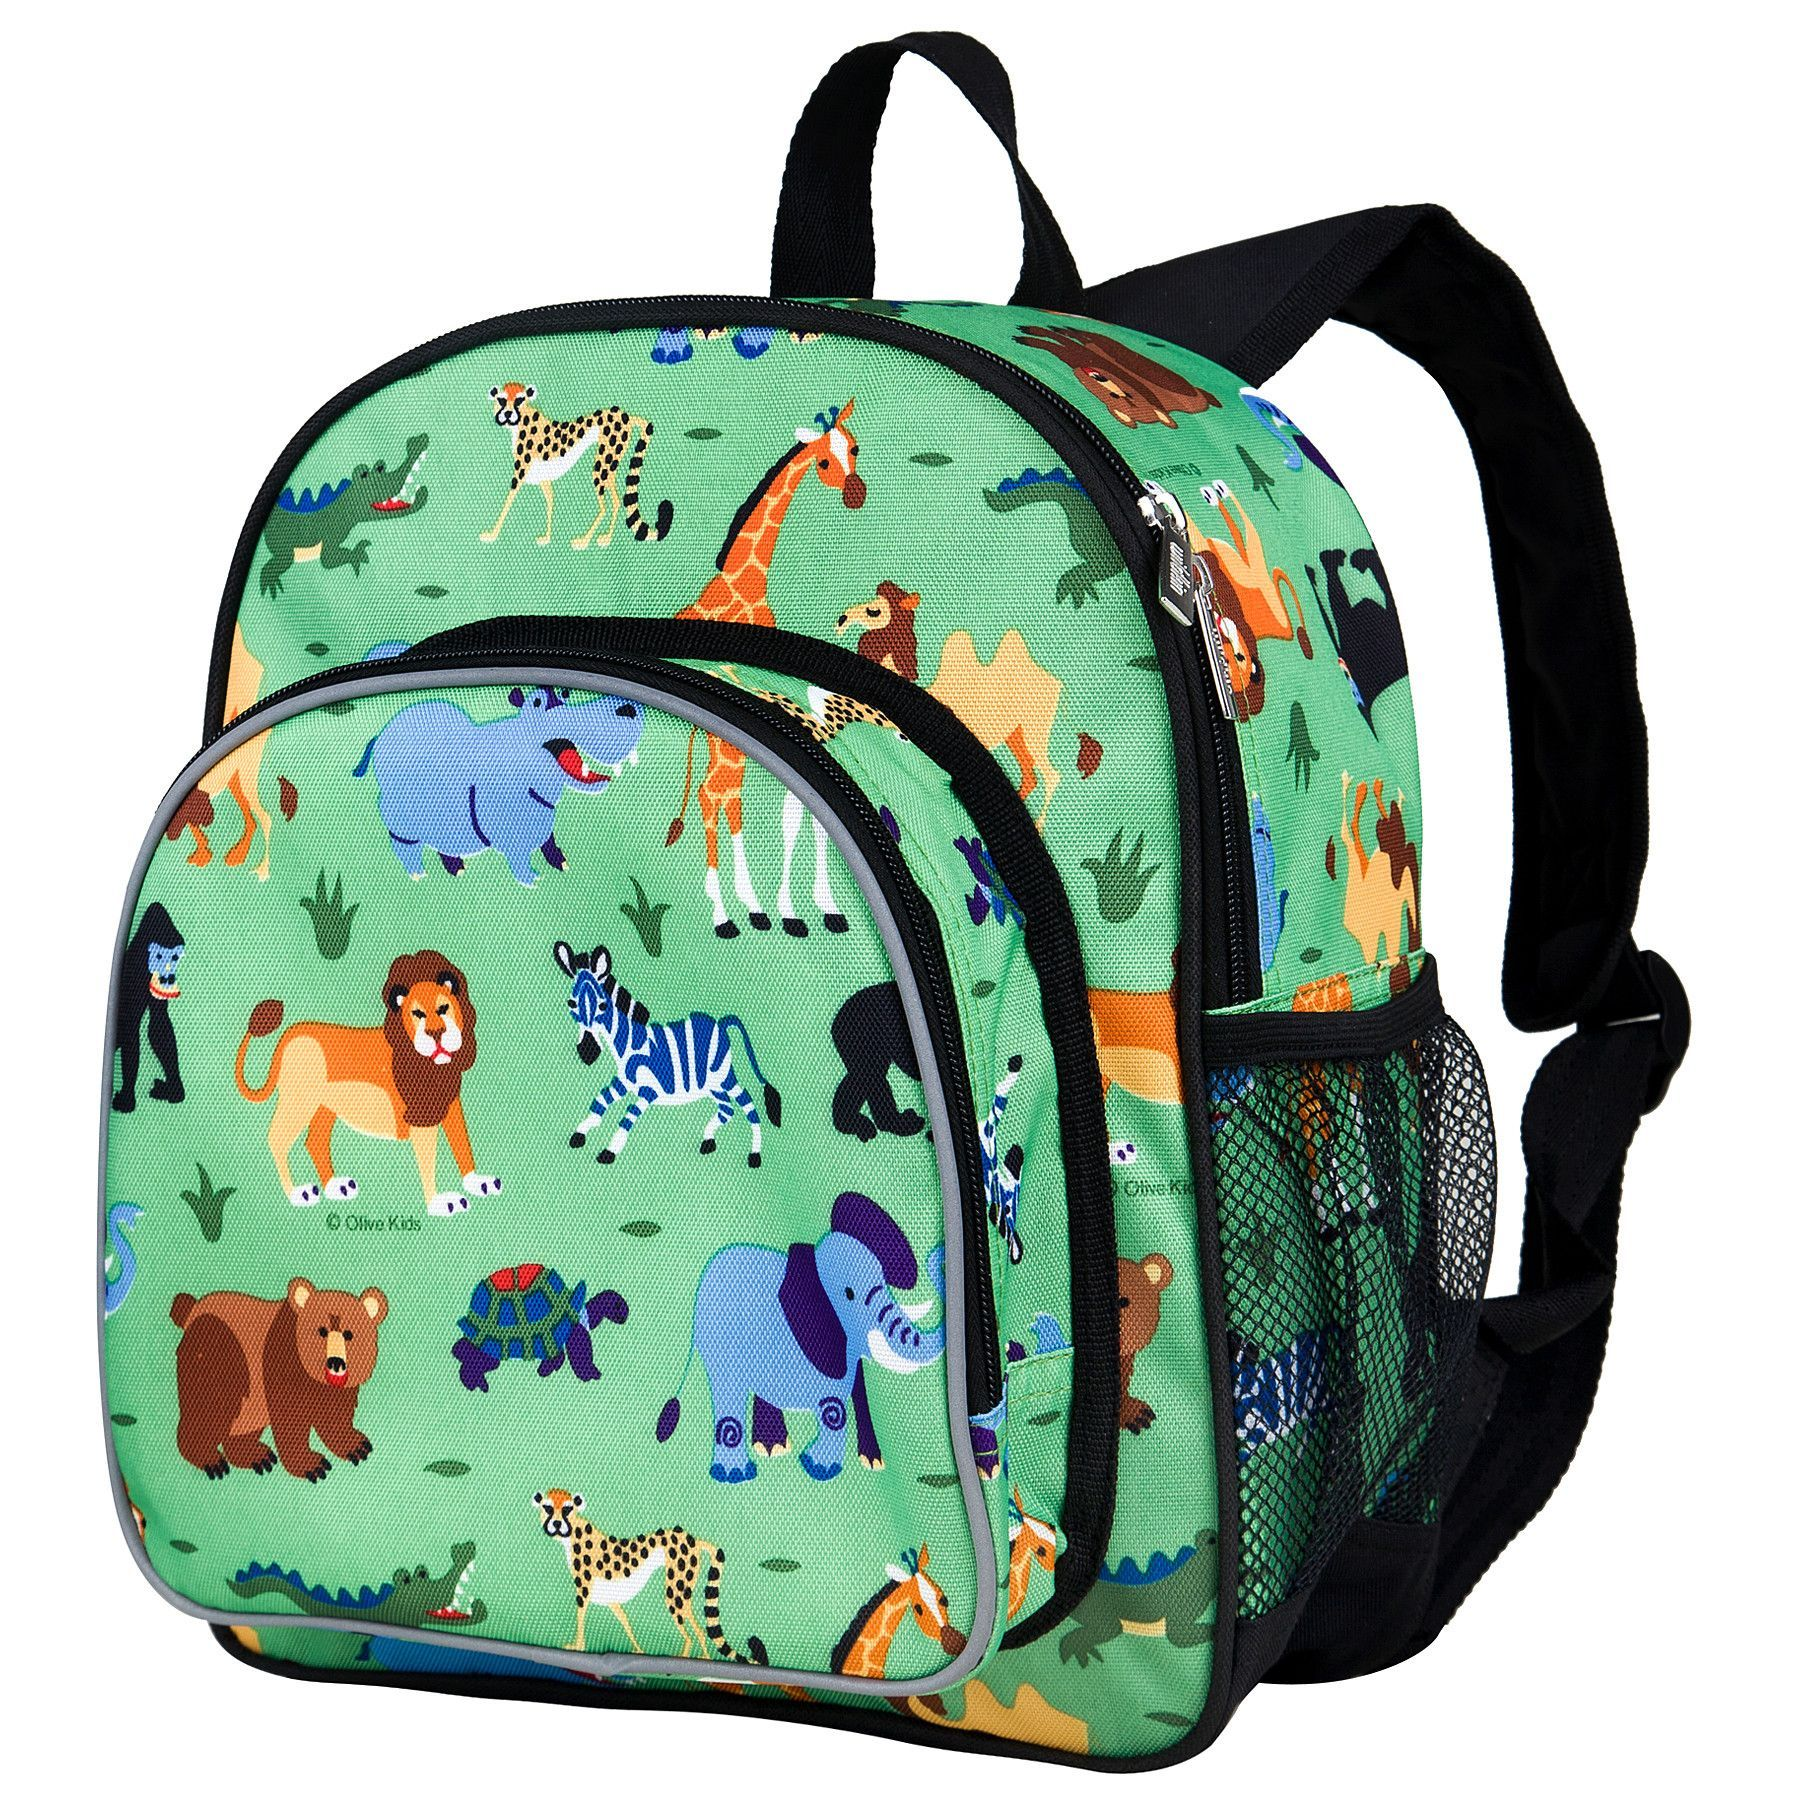 54ce42b9230c Our Pack  n Snack Backpack combines two products into one economic space.  This Backpack features a generously-sized